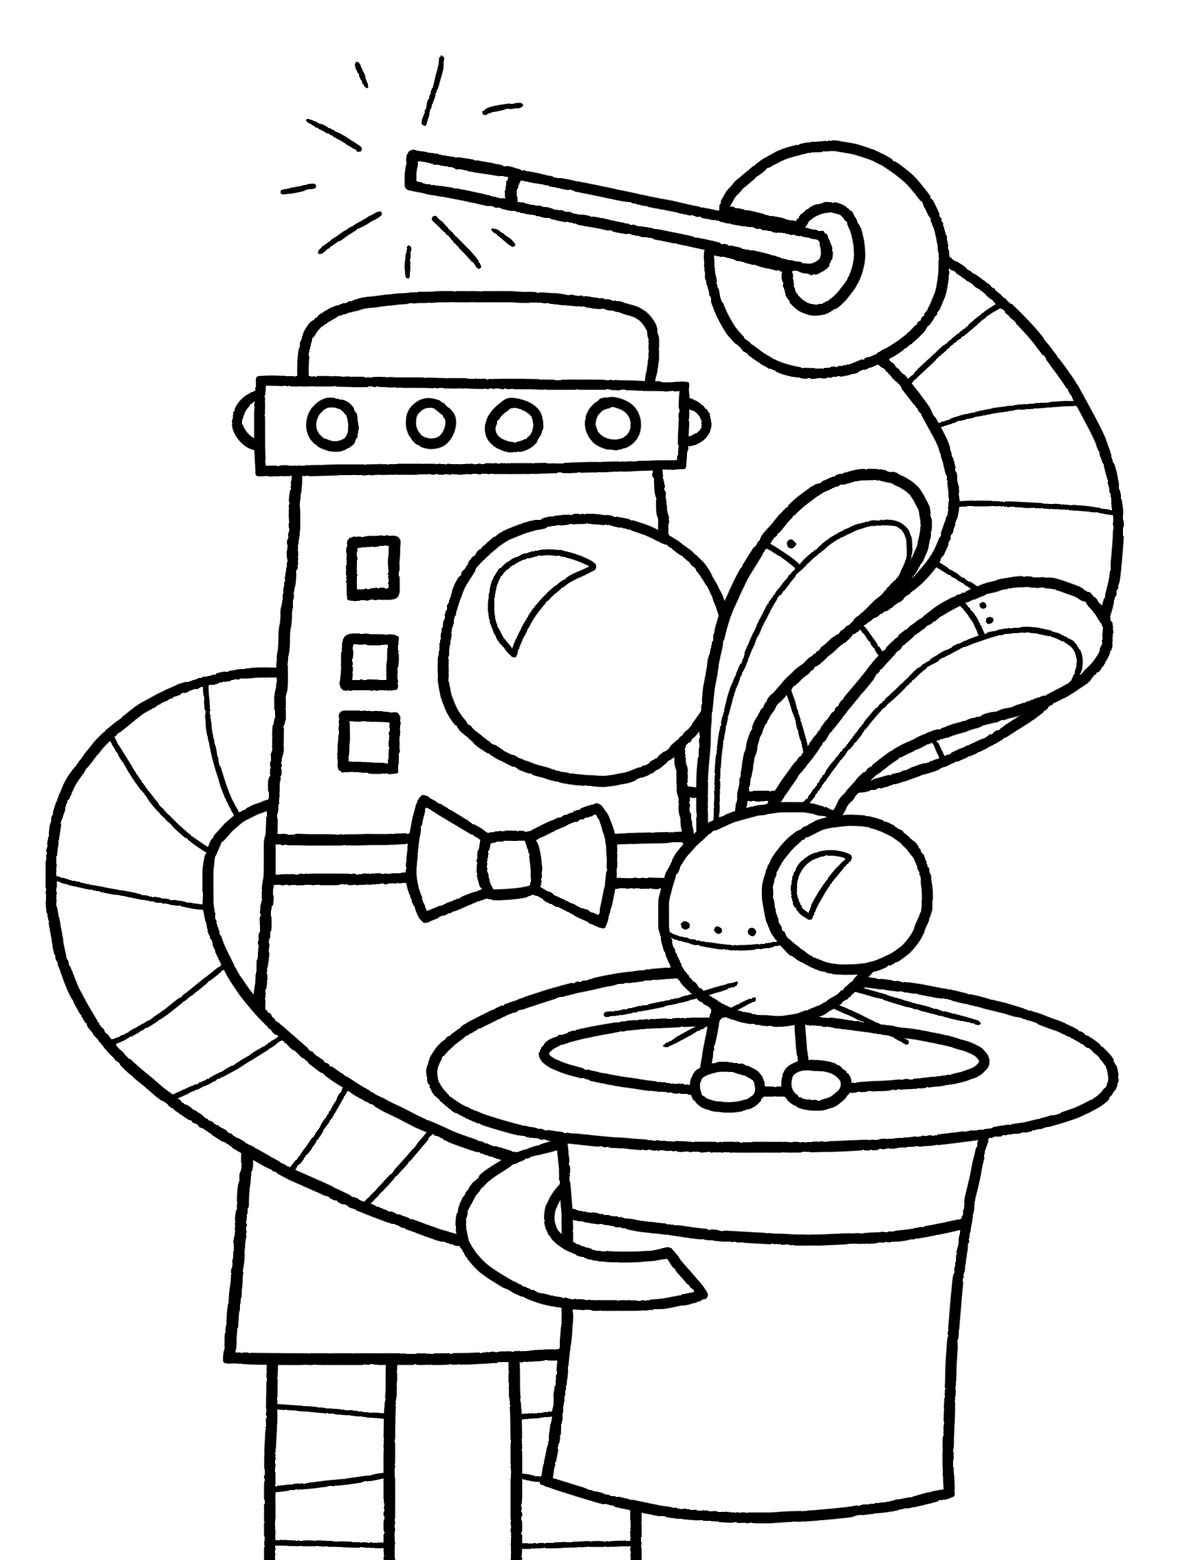 robot for coloring robot coloring pages free printable coloring pages for for coloring robot